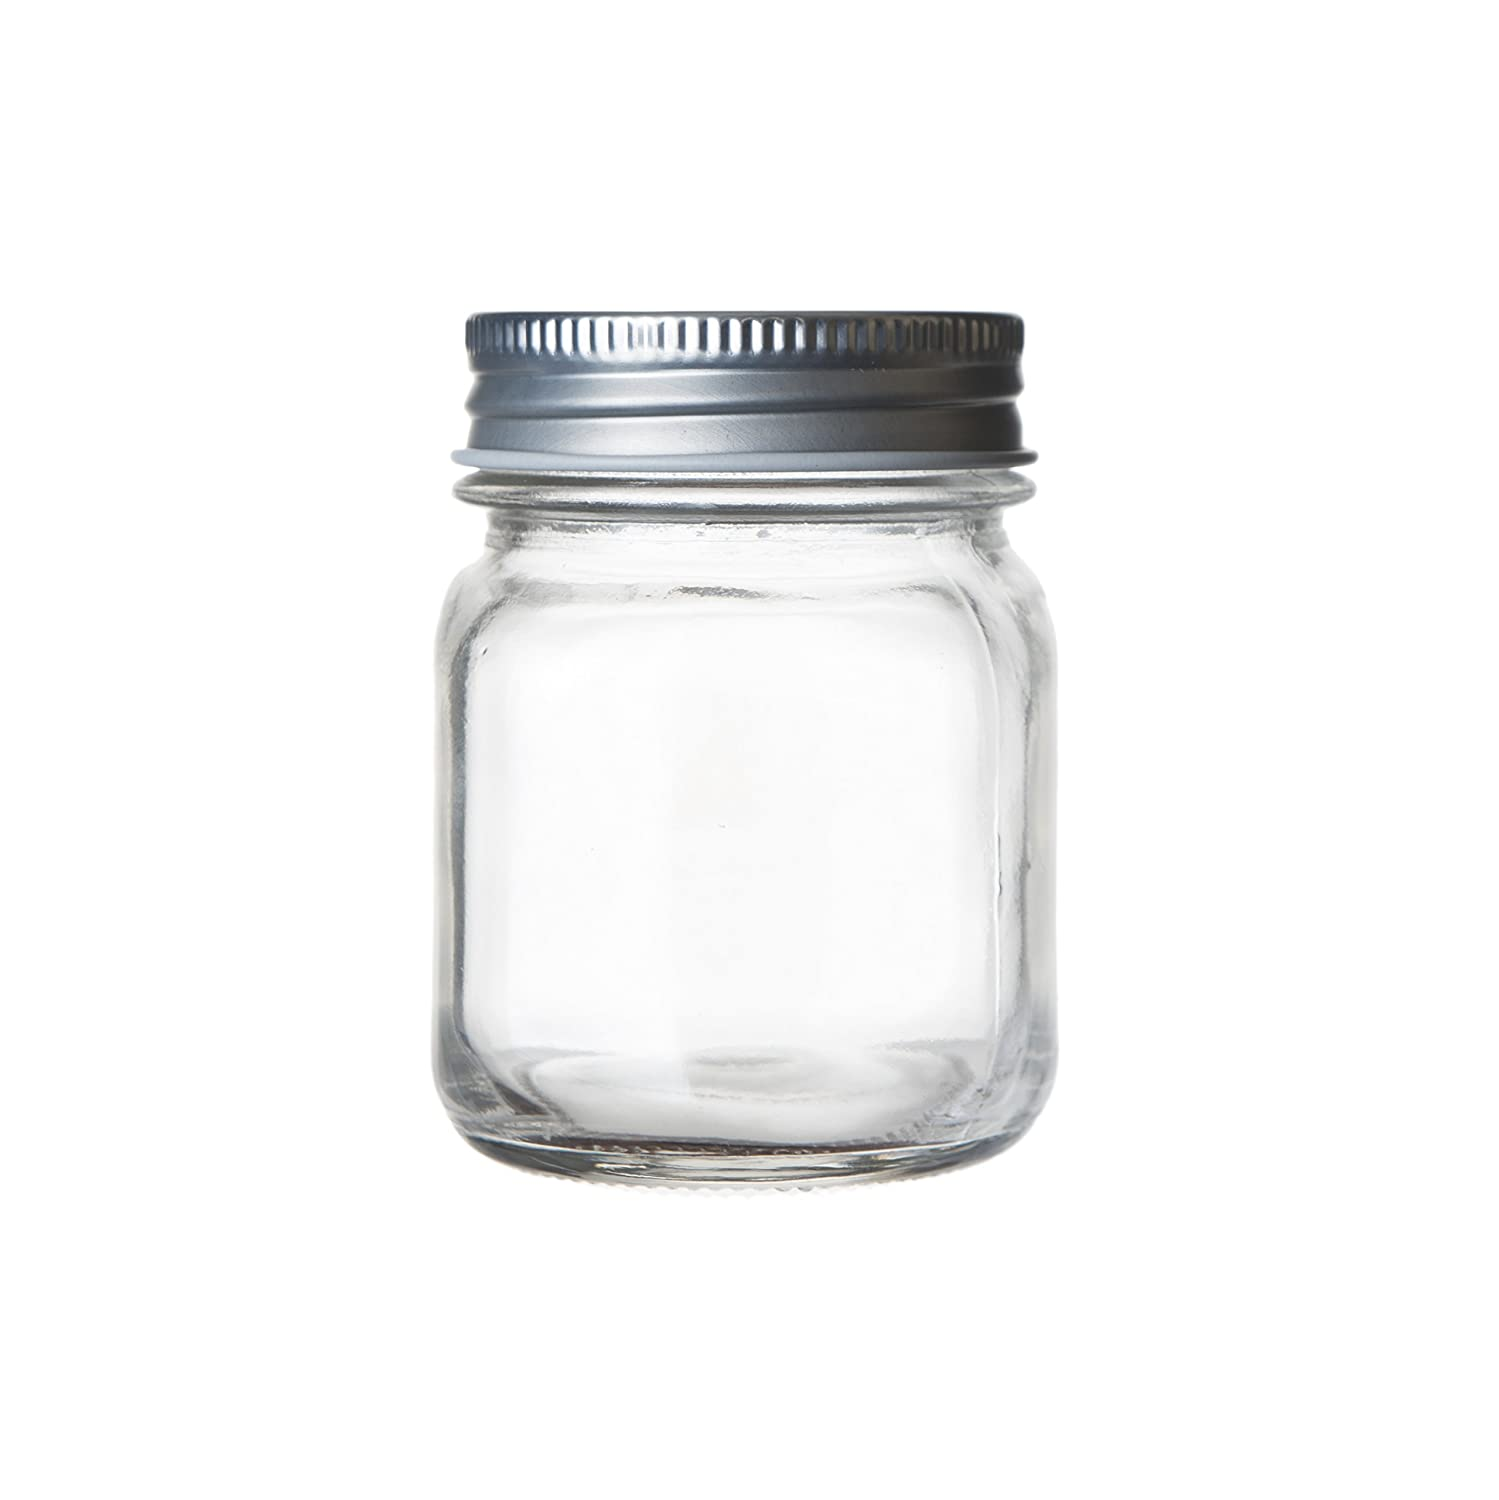 Seacoast Mason Jars, Regular Mouth With Steel Lids, (Set of 12) (5 oz) S-12